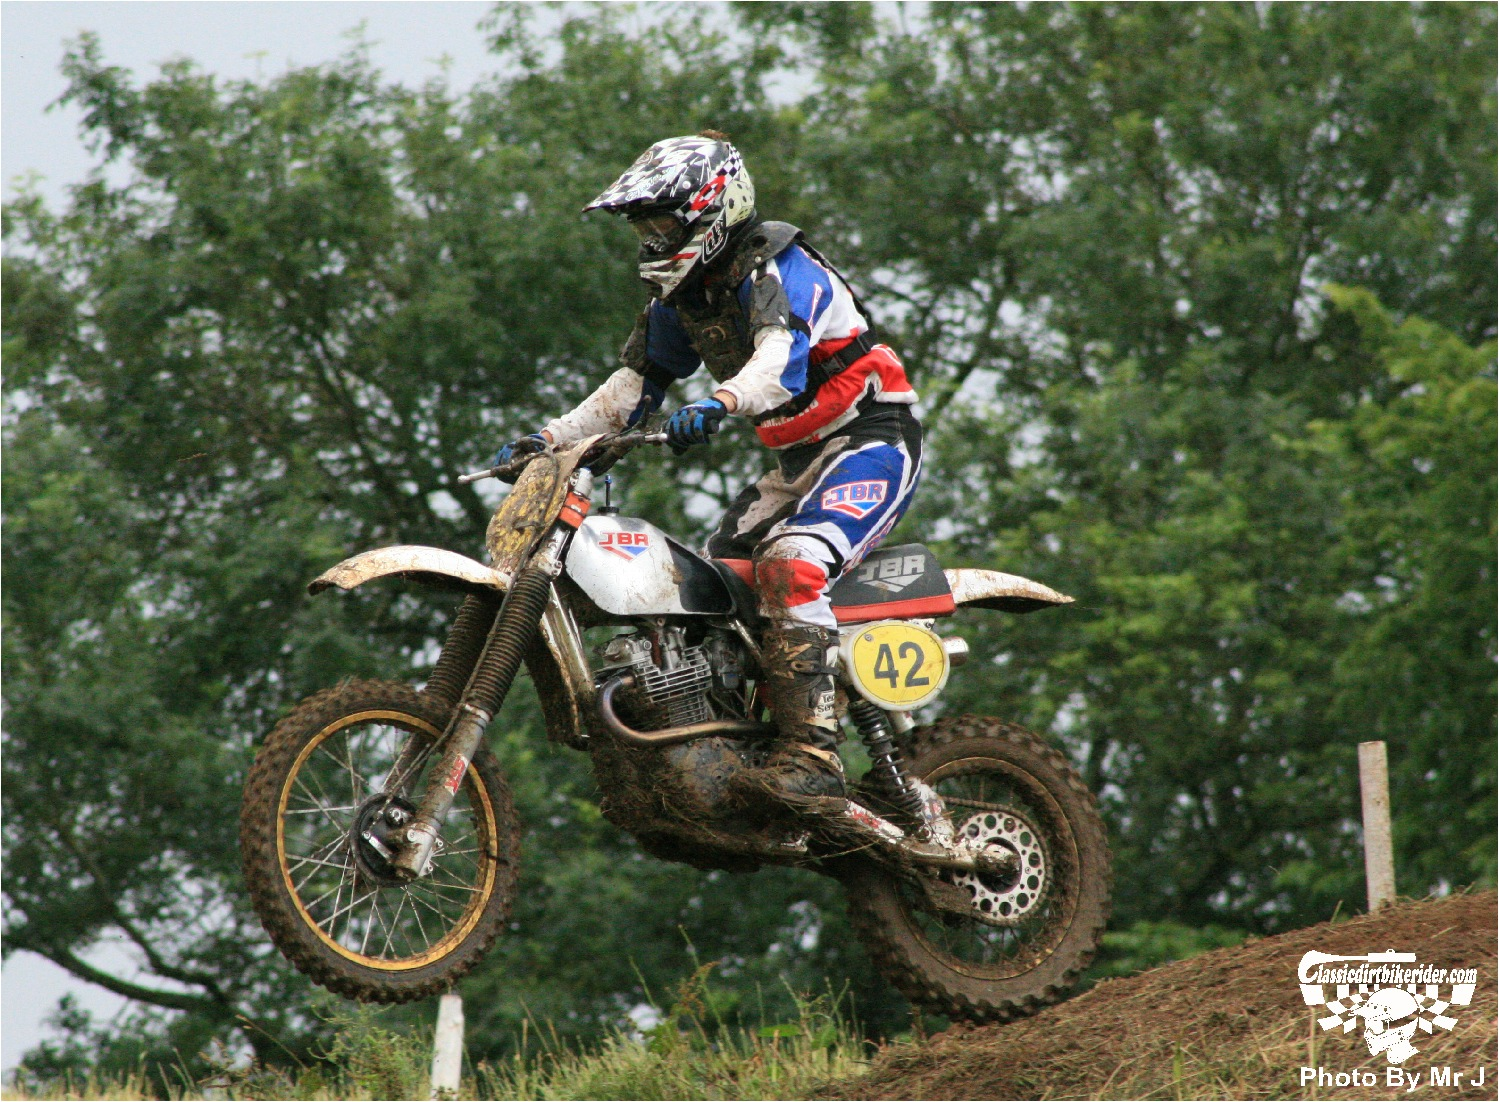 king of the castle 2015 photos Farleigh Castle twinshock motocross classicdirtbikerider.com 118